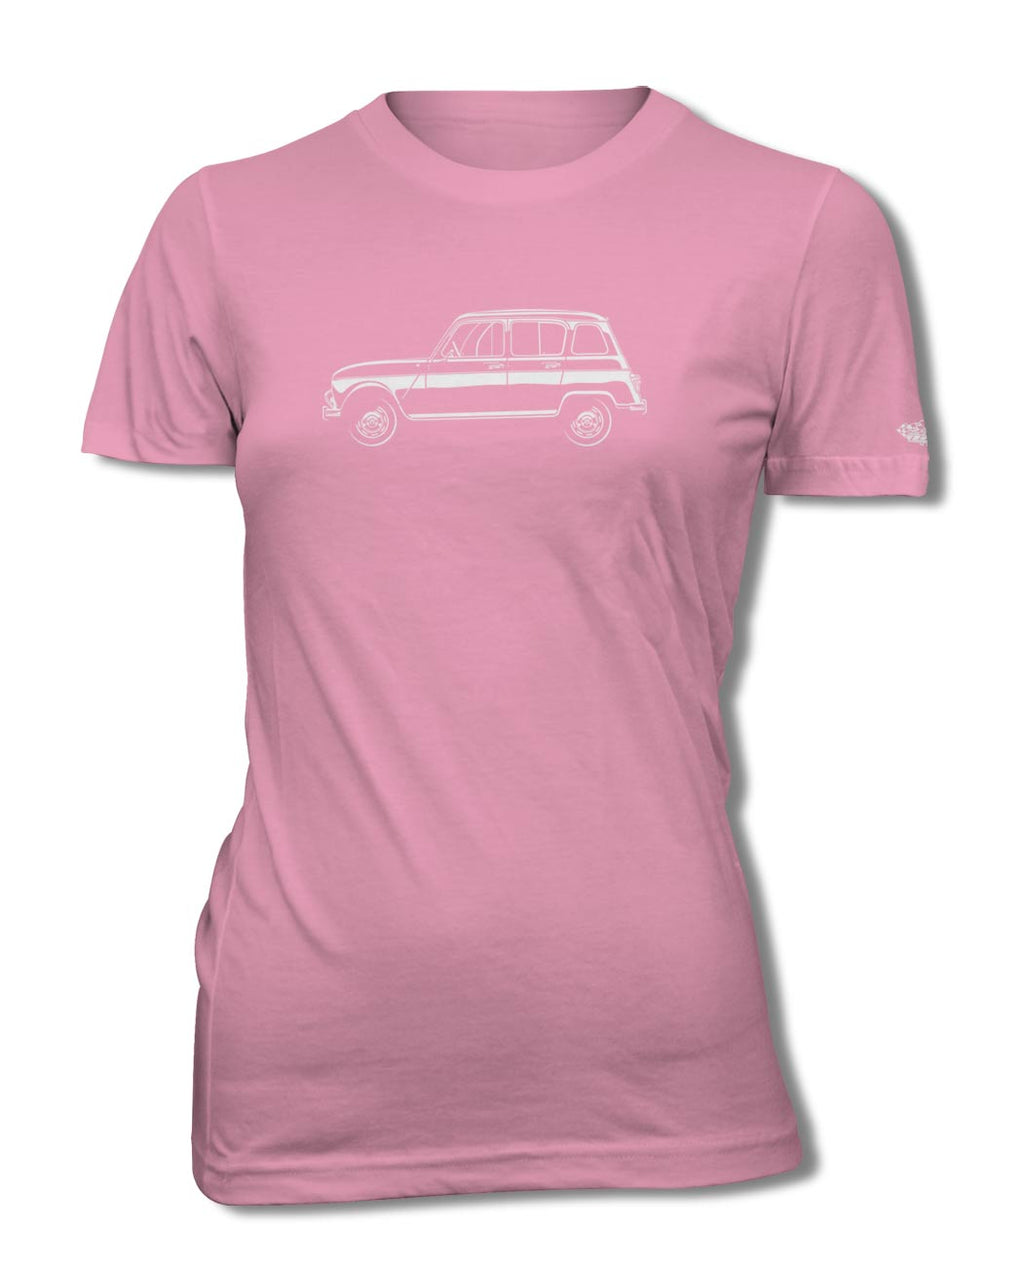 Renault R4 4L 1961 - 1977 T-Shirt - Women - Side View